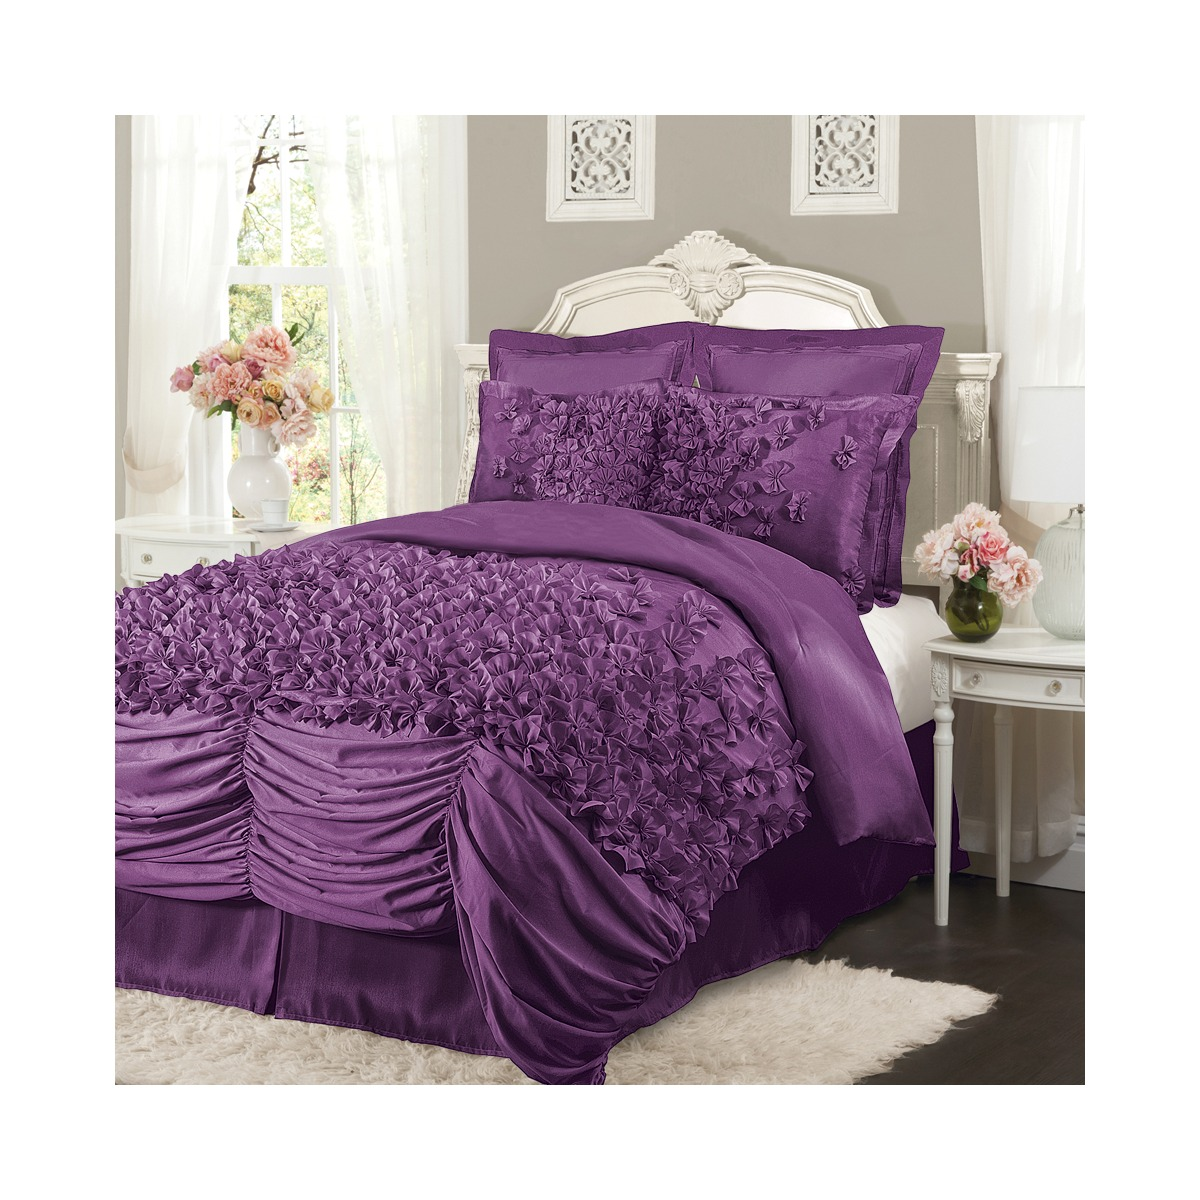 lush lucia purple ruffled king size 4 piece comforter set ebay. Black Bedroom Furniture Sets. Home Design Ideas